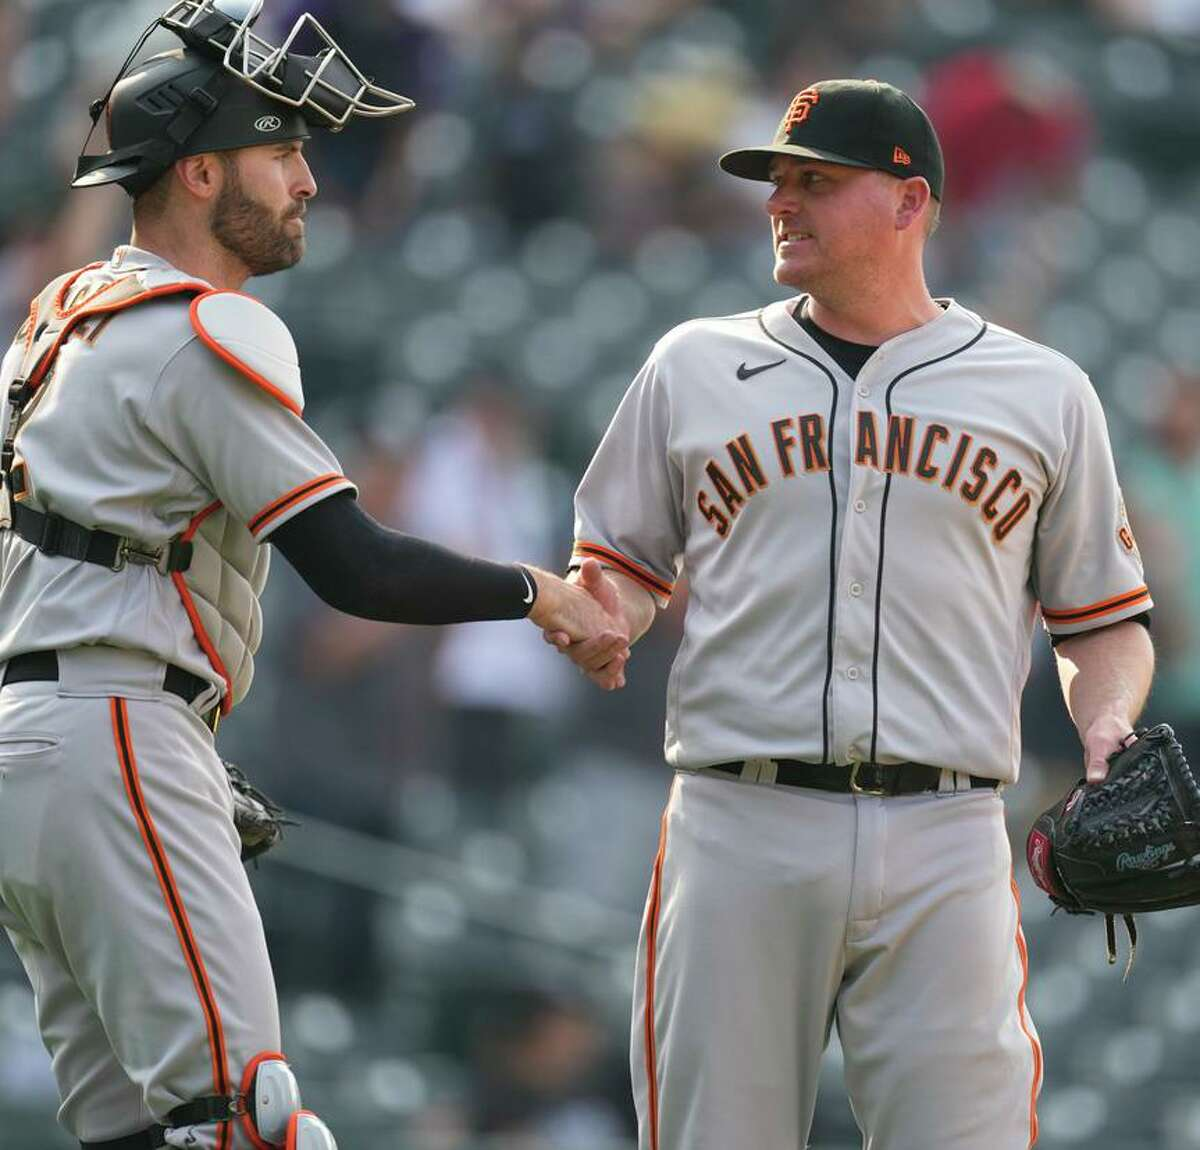 San Francisco Giants catcher Curt Casali, left, congratulates relief pitcher Jake McGee after the team's baseball game against the Colorado Rockies on Wednesday, Sept. 8, 2021, in Denver. The Giants won 7-4. (AP Photo/David Zalubowski)